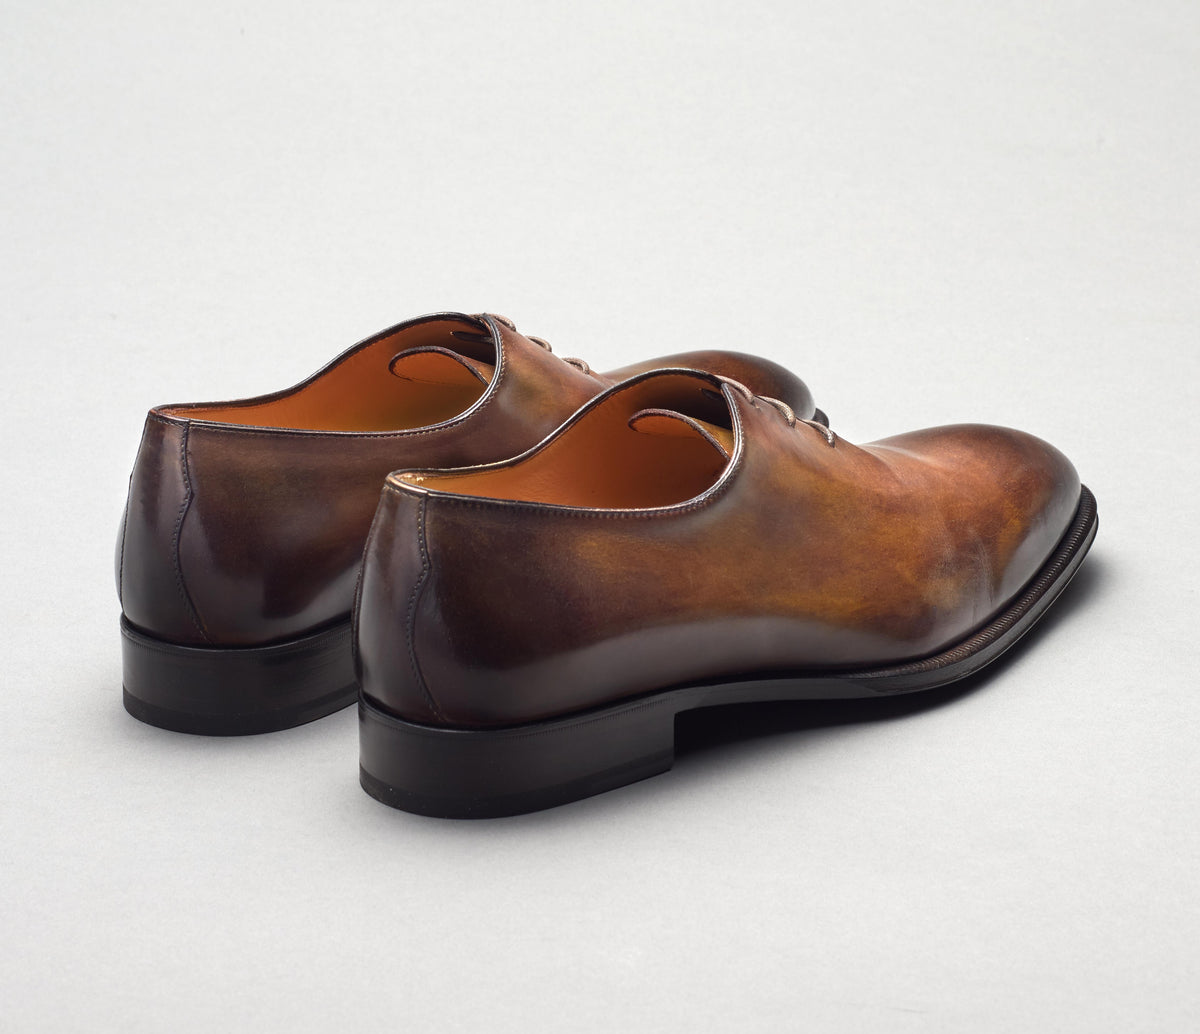 Genoa Leather Deco Loafer